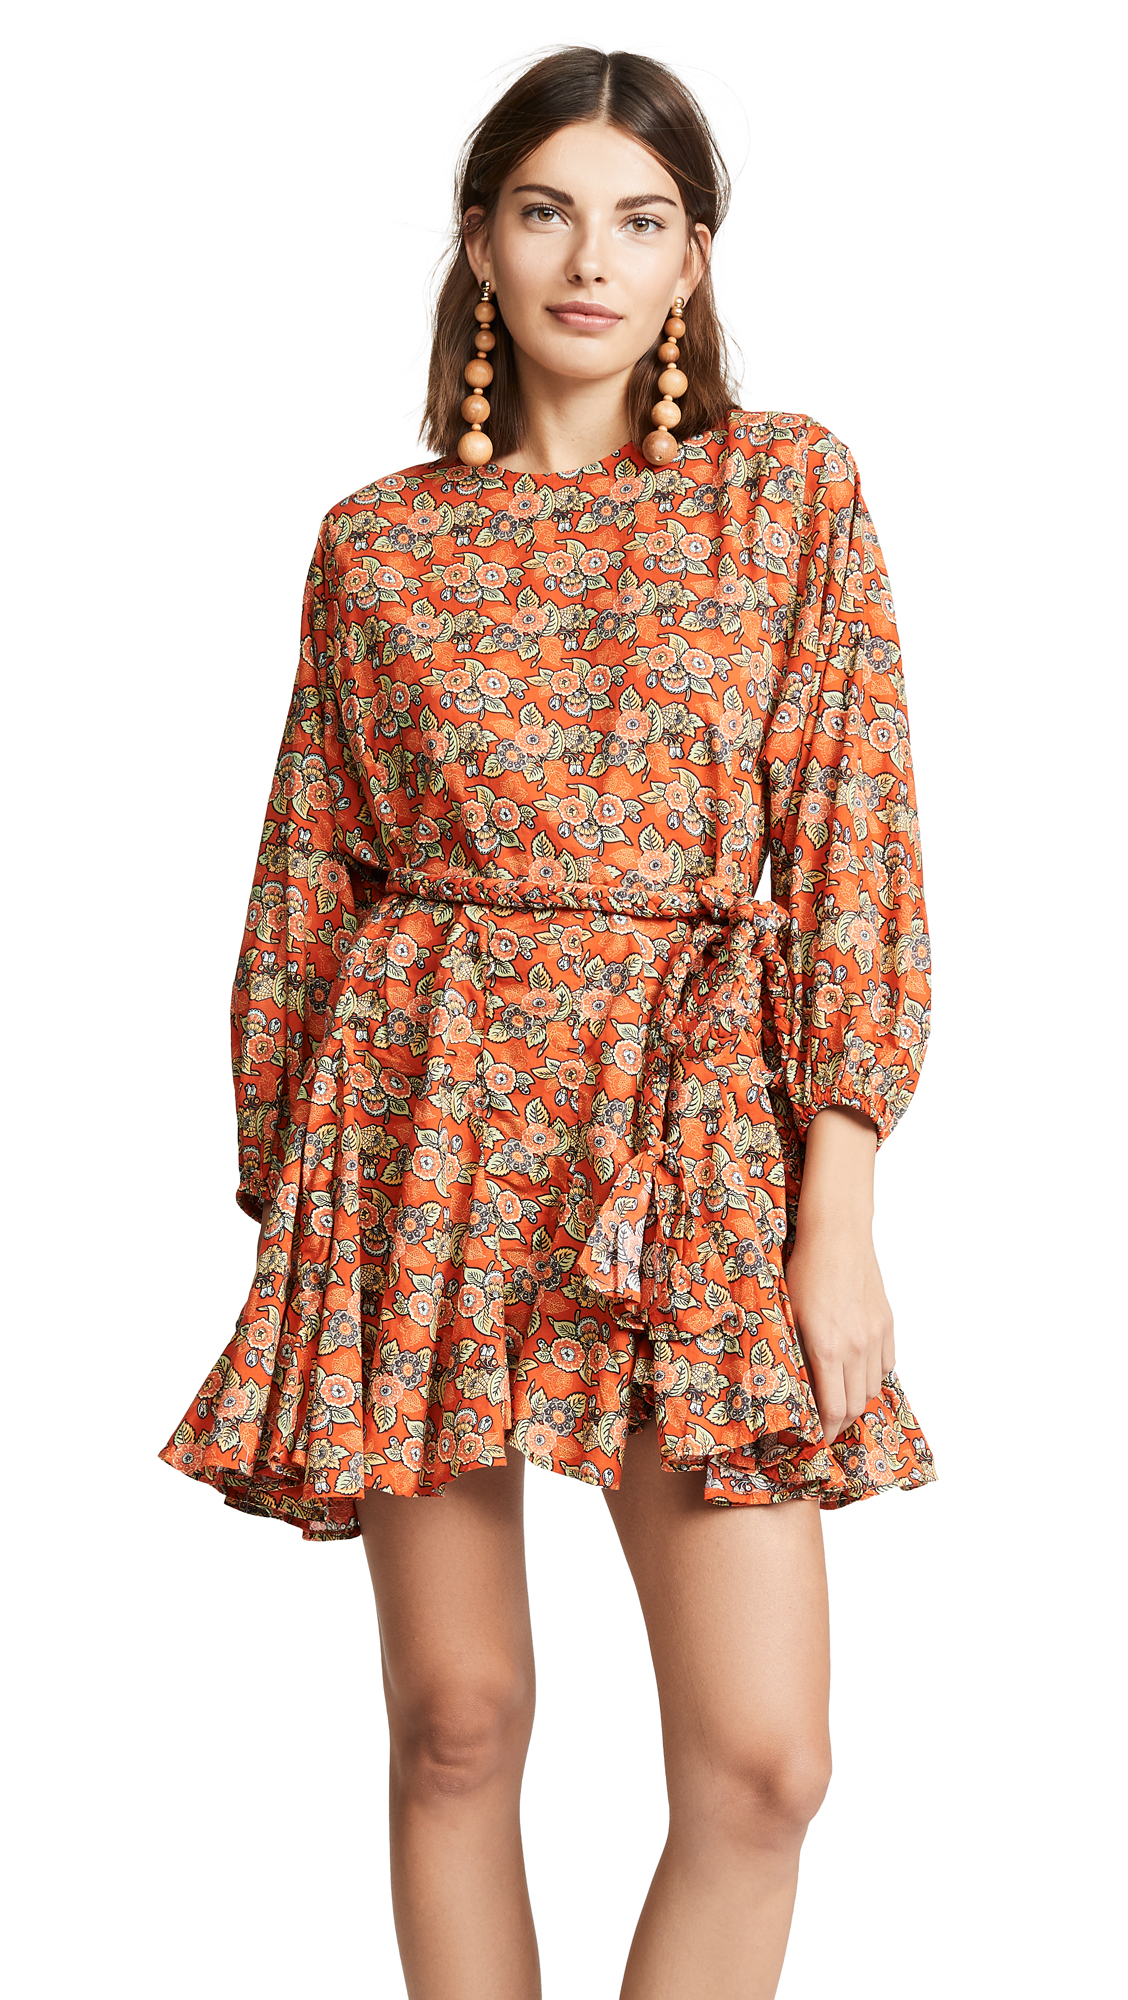 RHODE RESORT Ella Dress in Tangerine Blossom